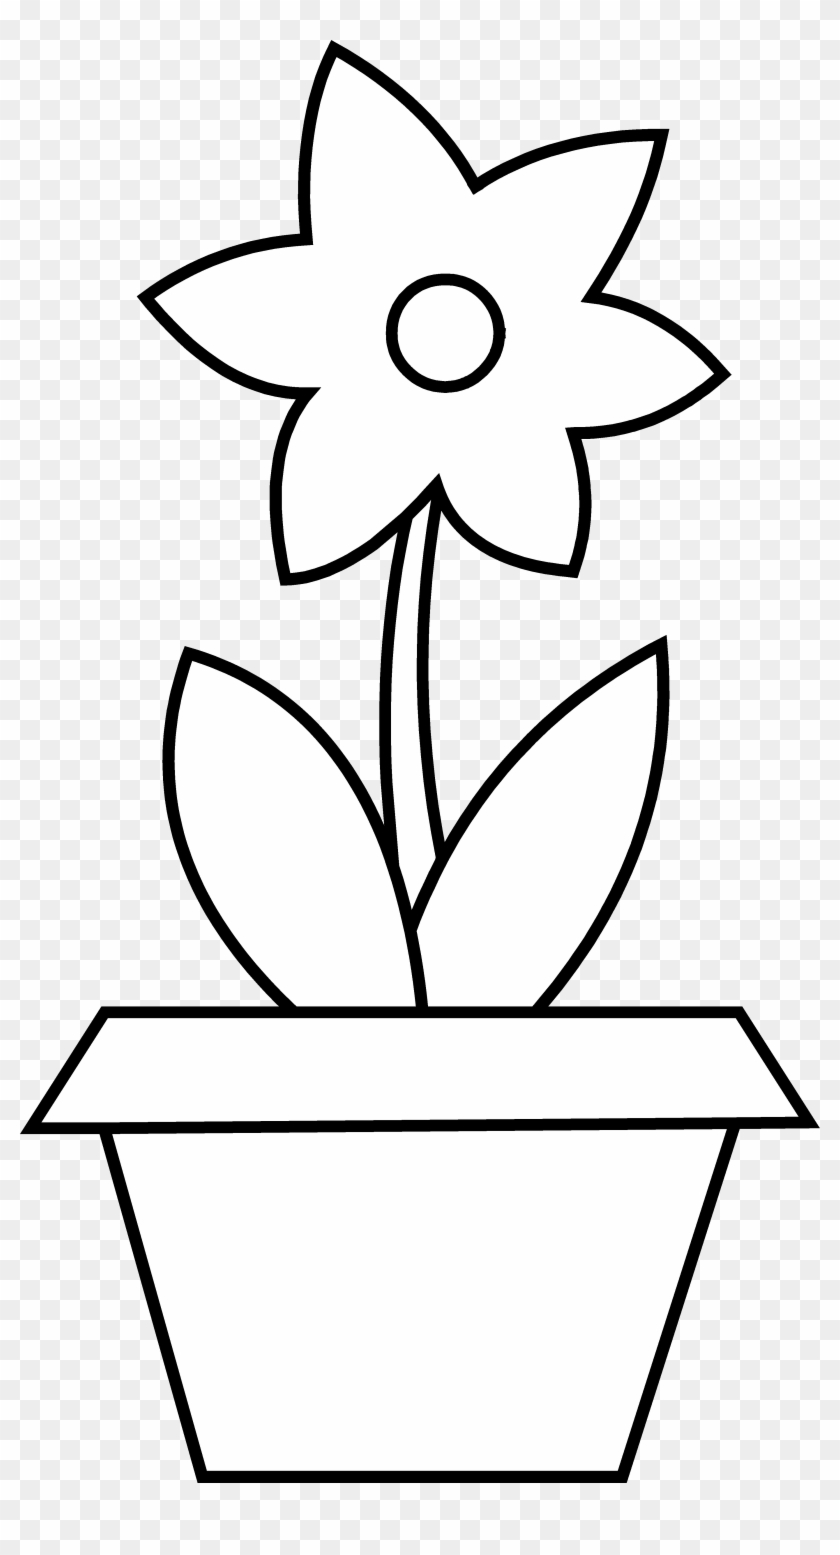 Plant Clipart Colouring Colouring Pages Of Flower Pot Free